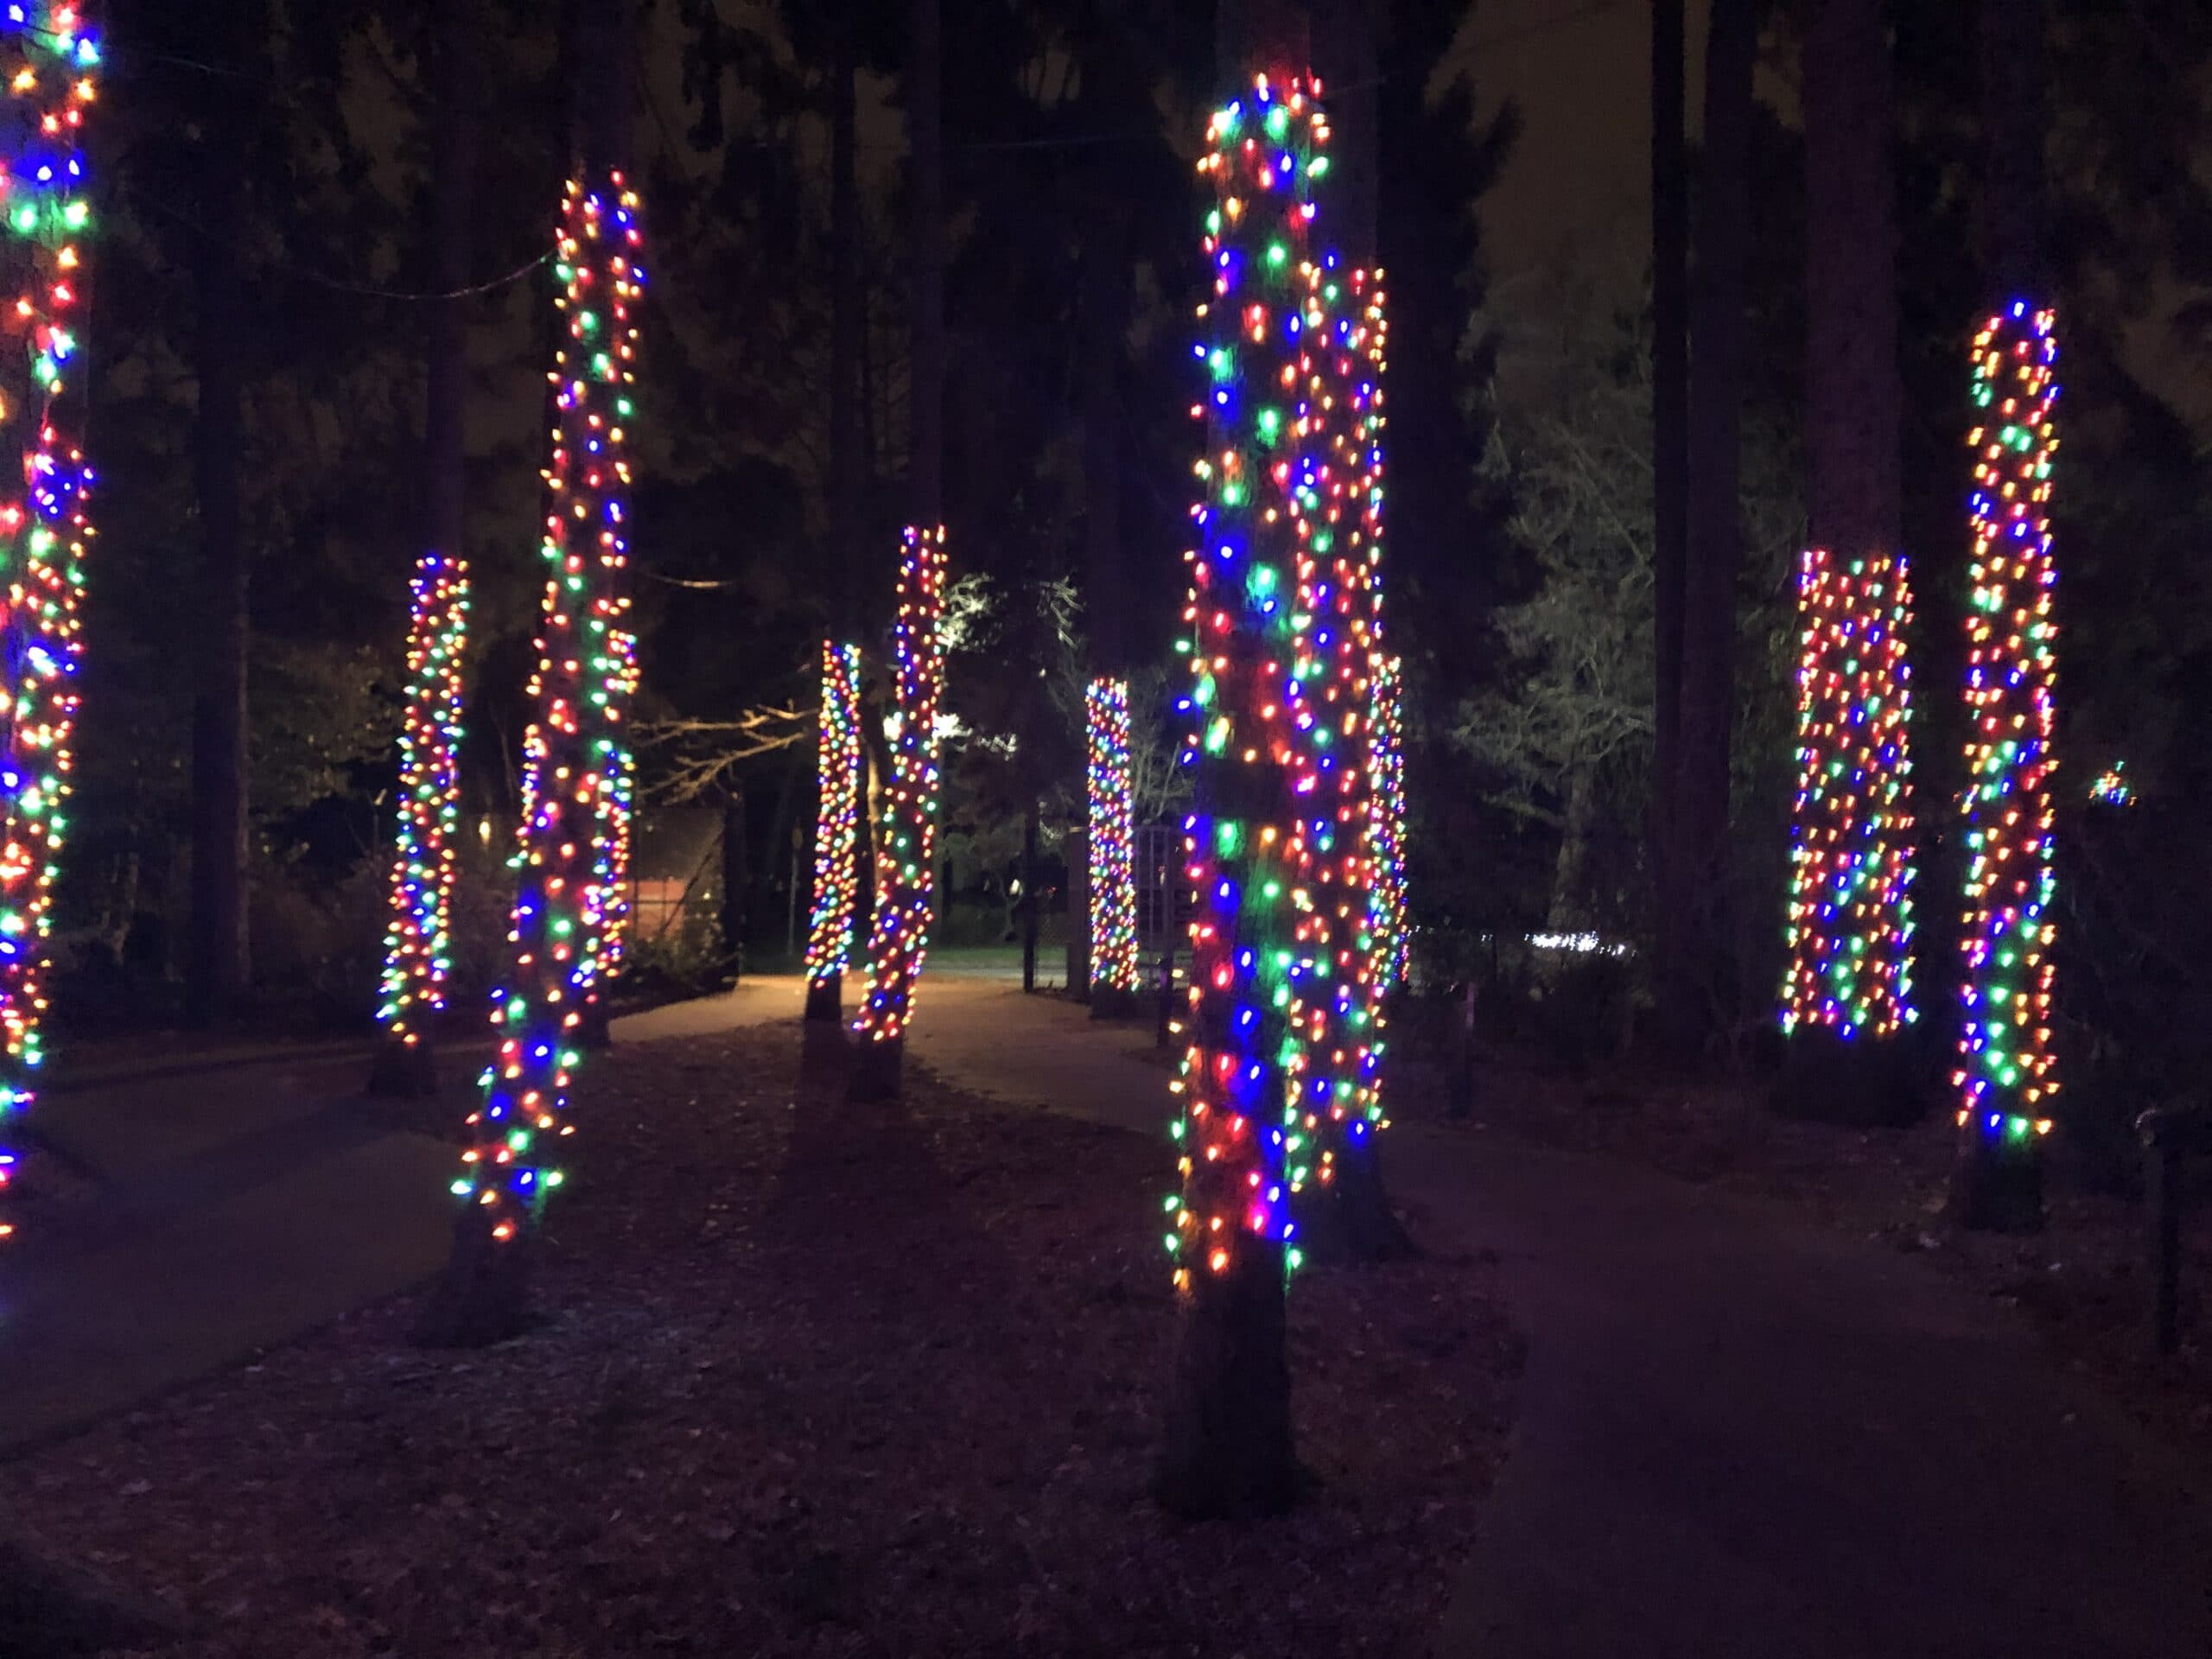 holiday lights on trees at Woodland Park Zoo